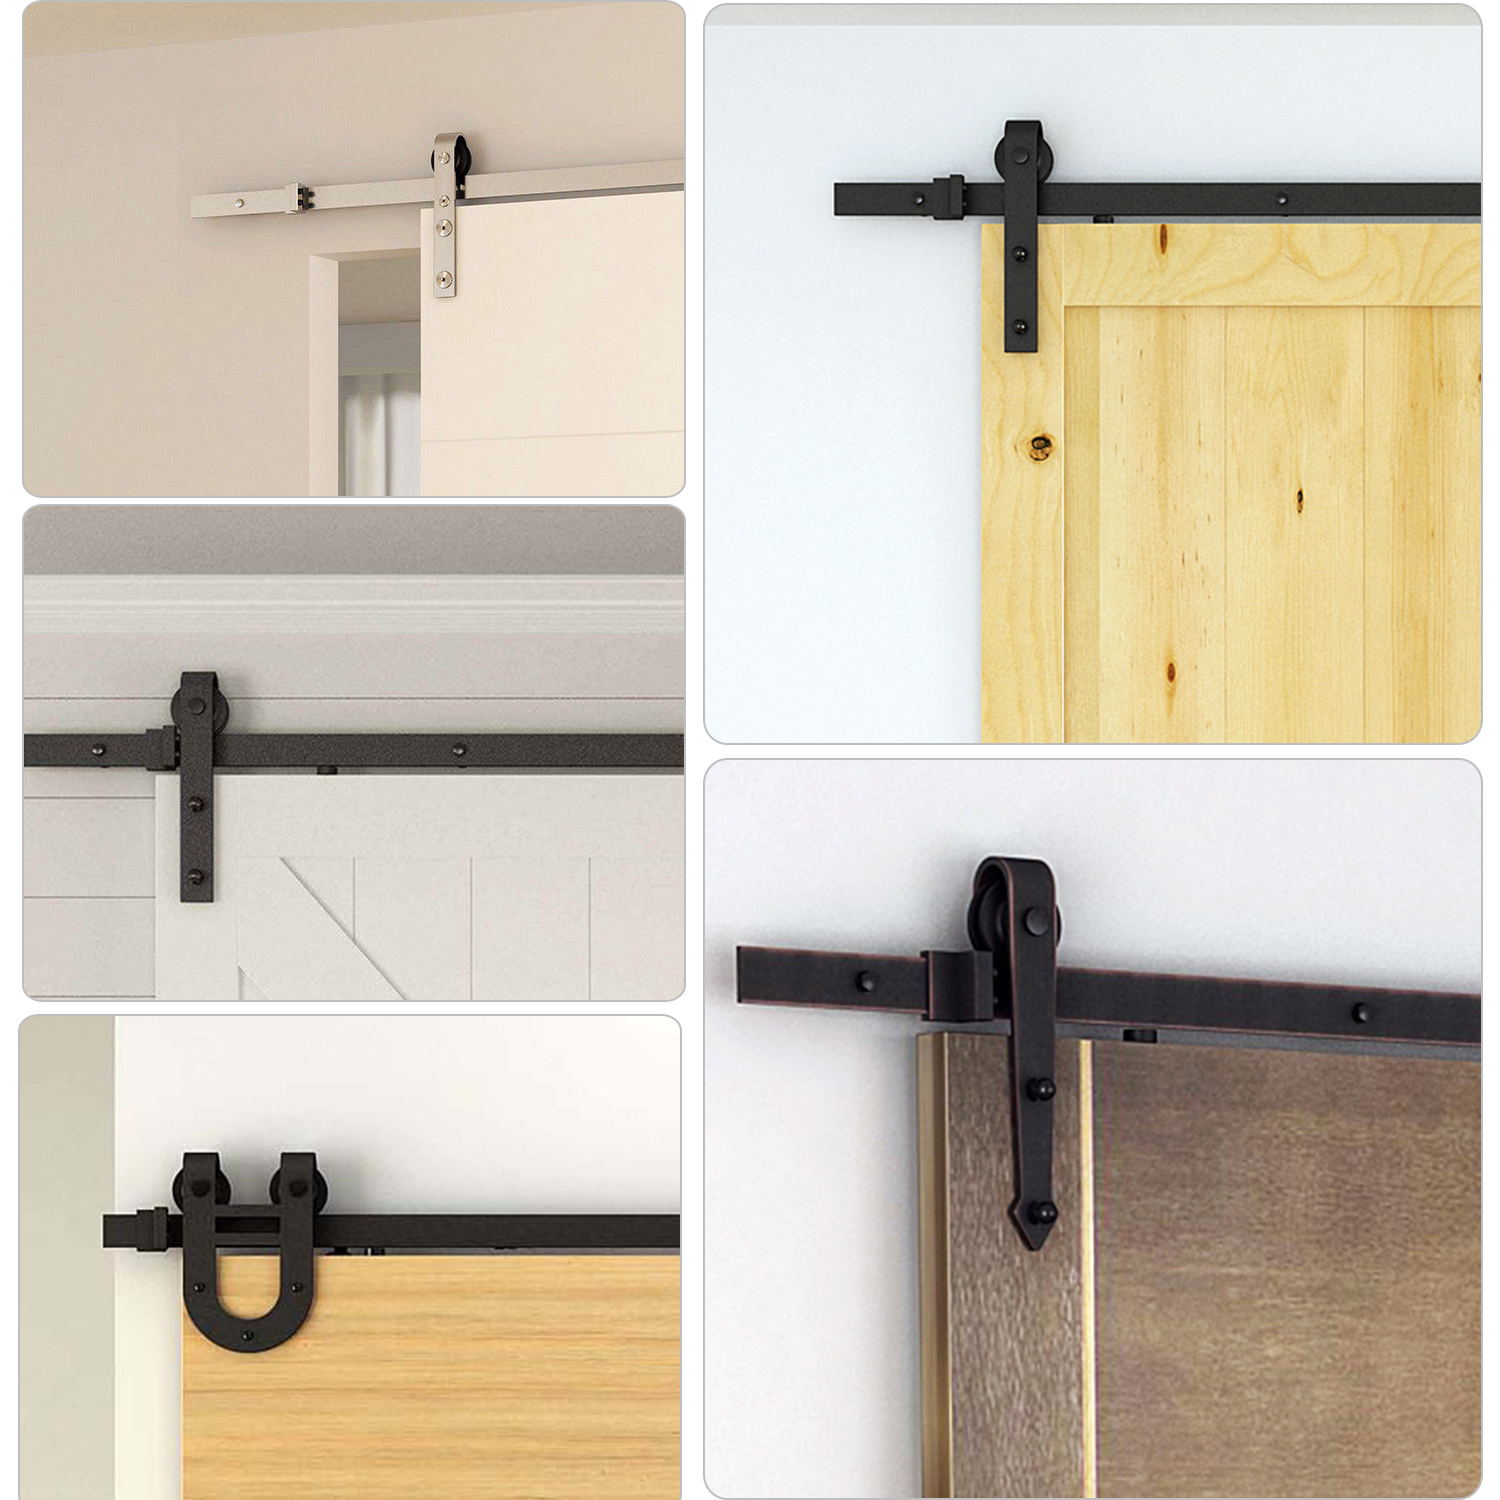 Room Steel Sliding Barn Wood Door Hardware Track Kit for Thickness 40-45mm 12Ft